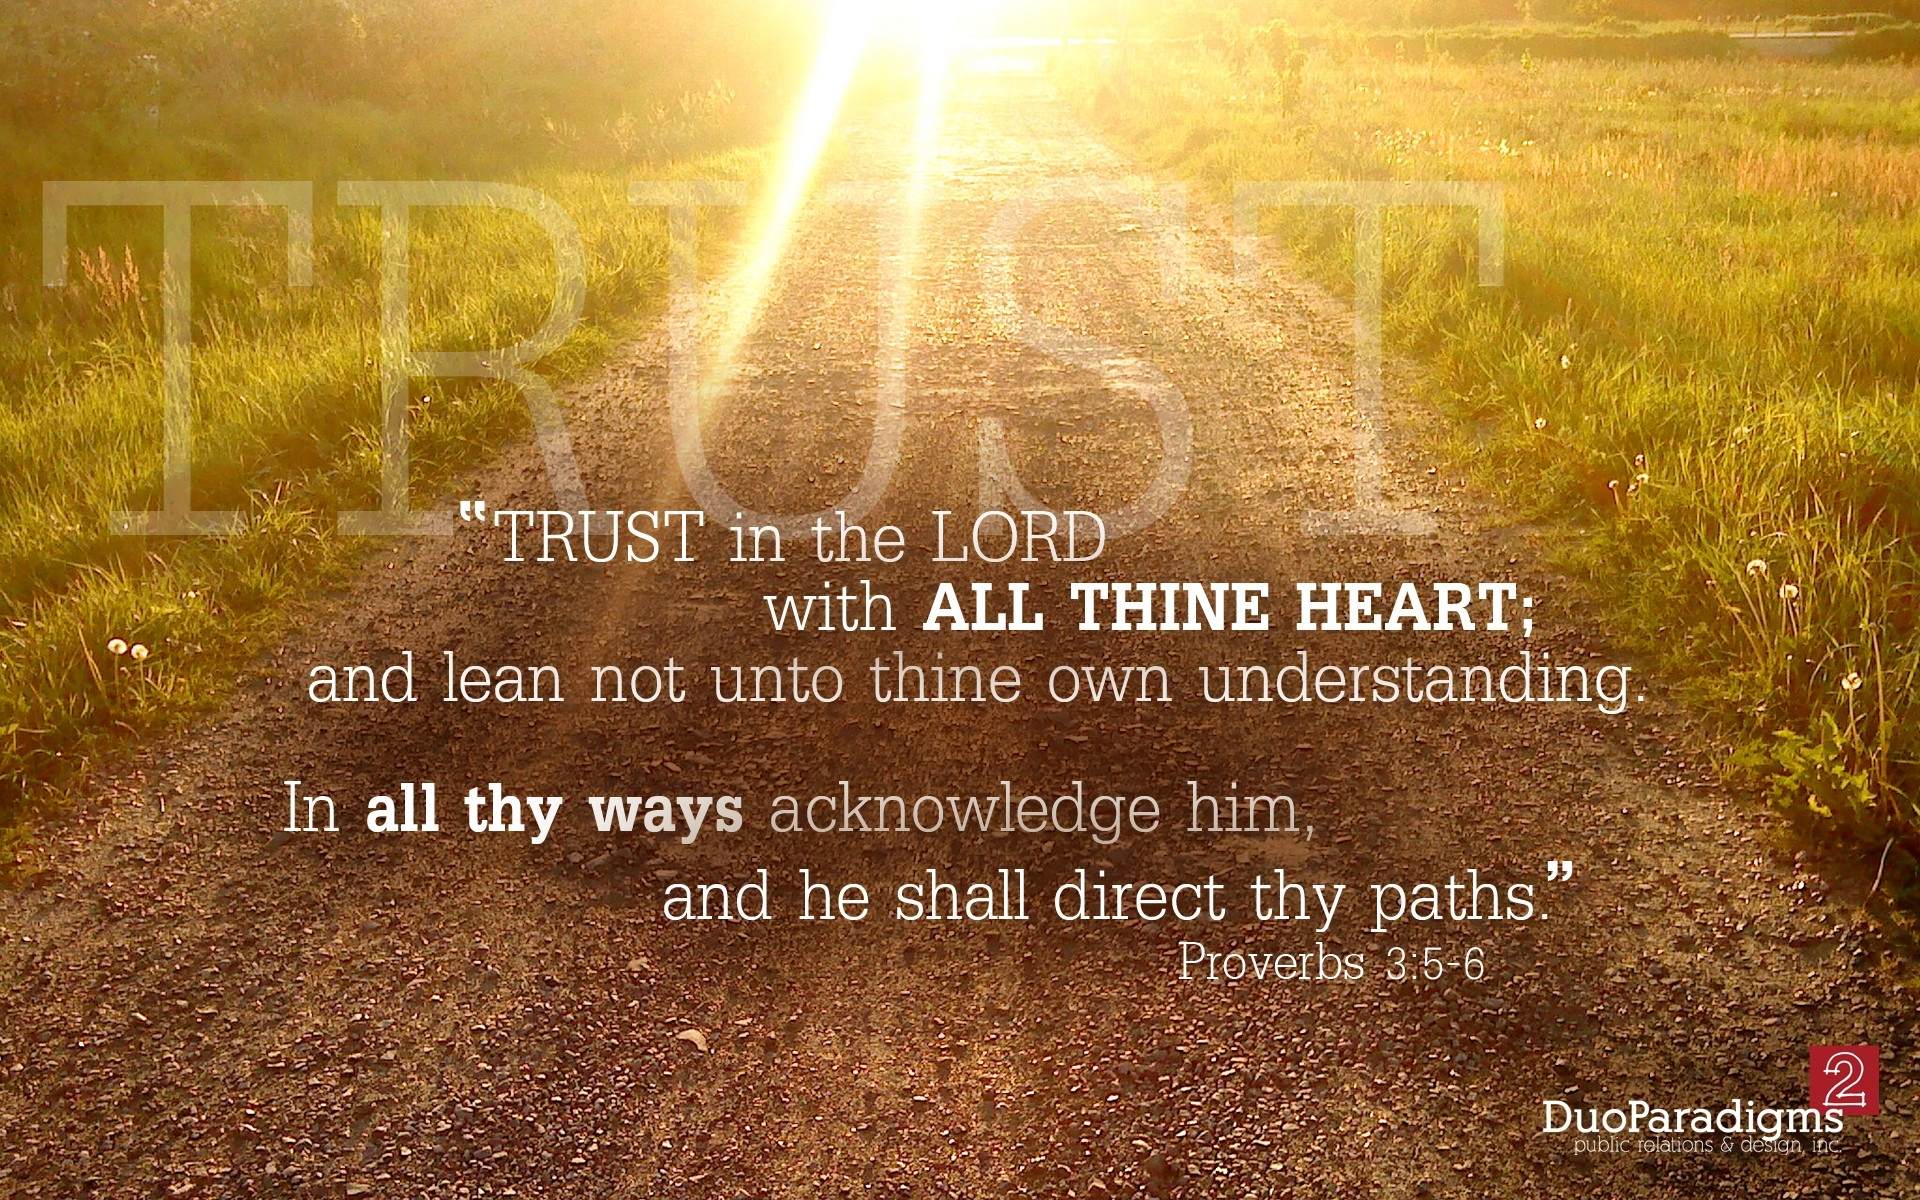 proverbs 3 5 6 wallpaper (58+ images)